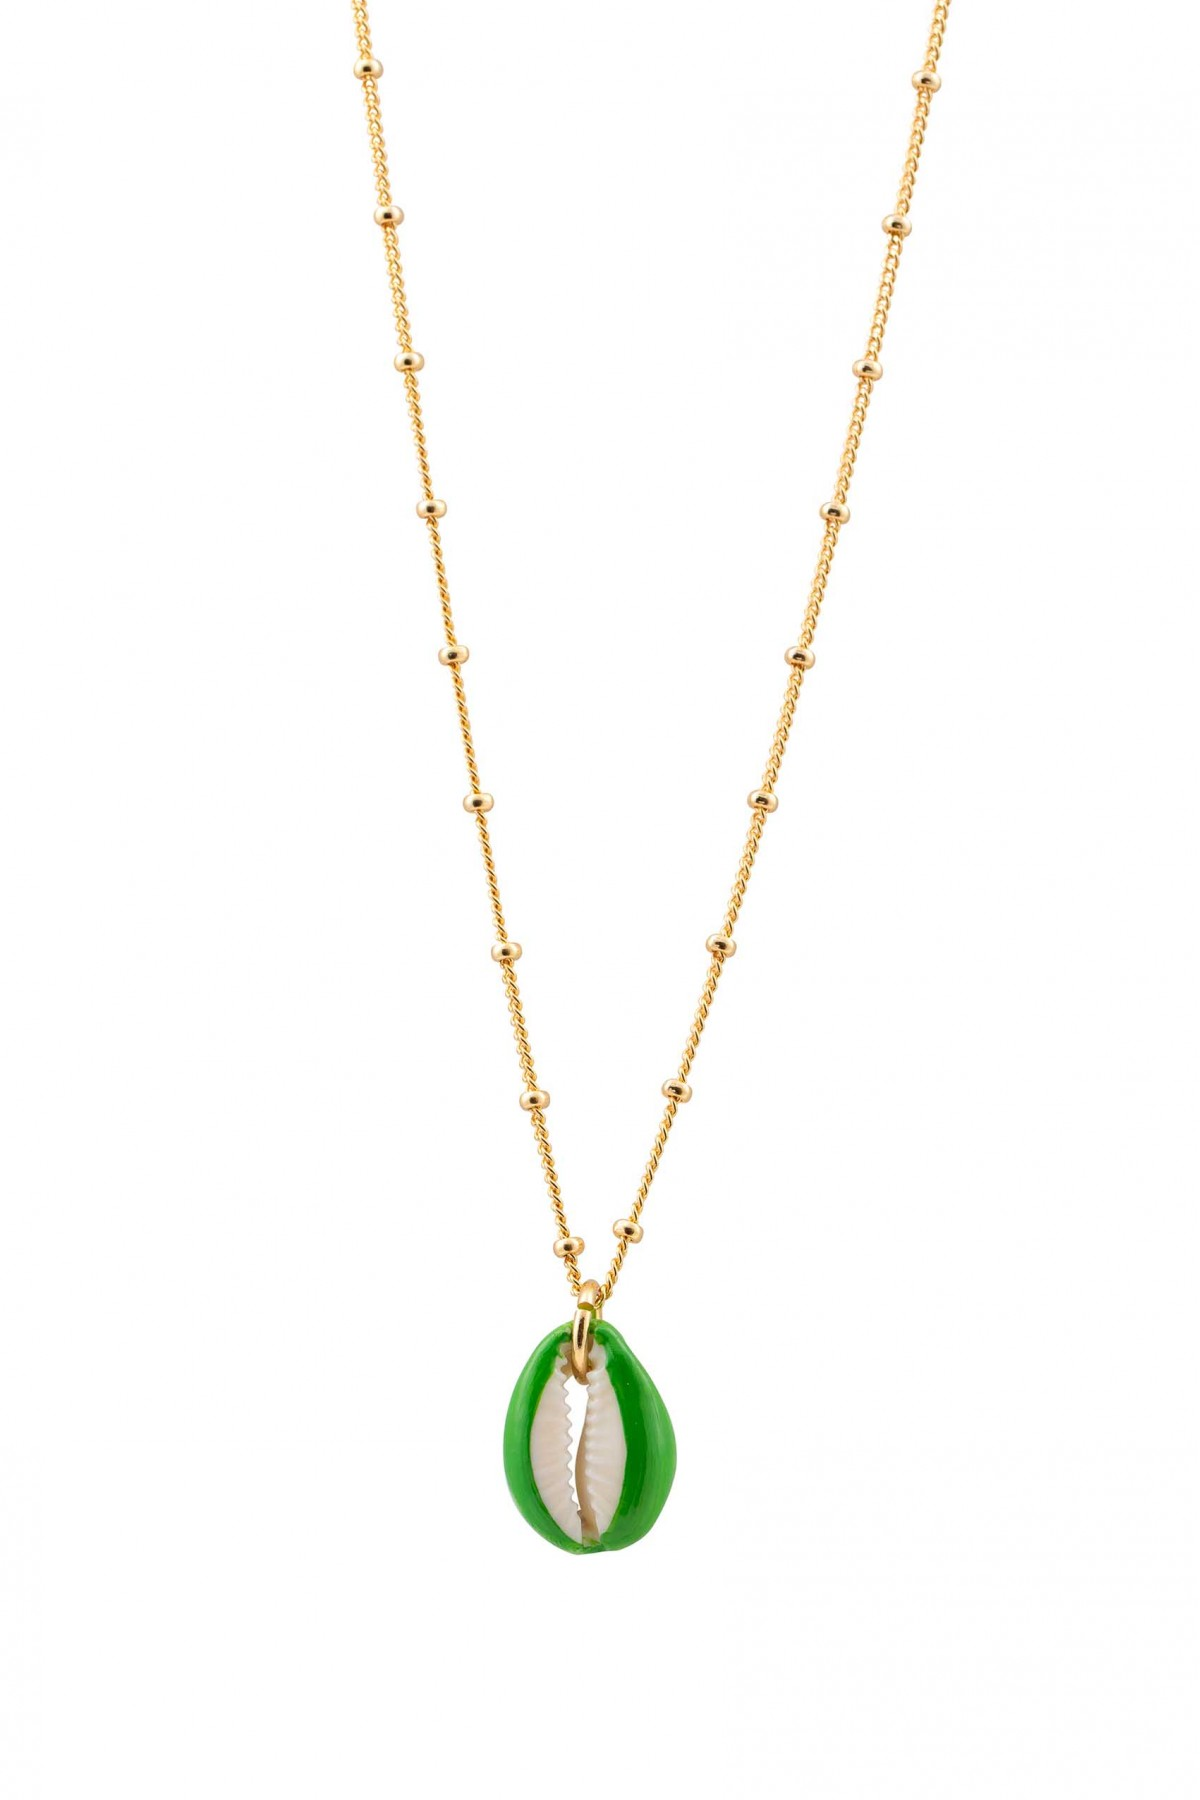 Palawan Necklace